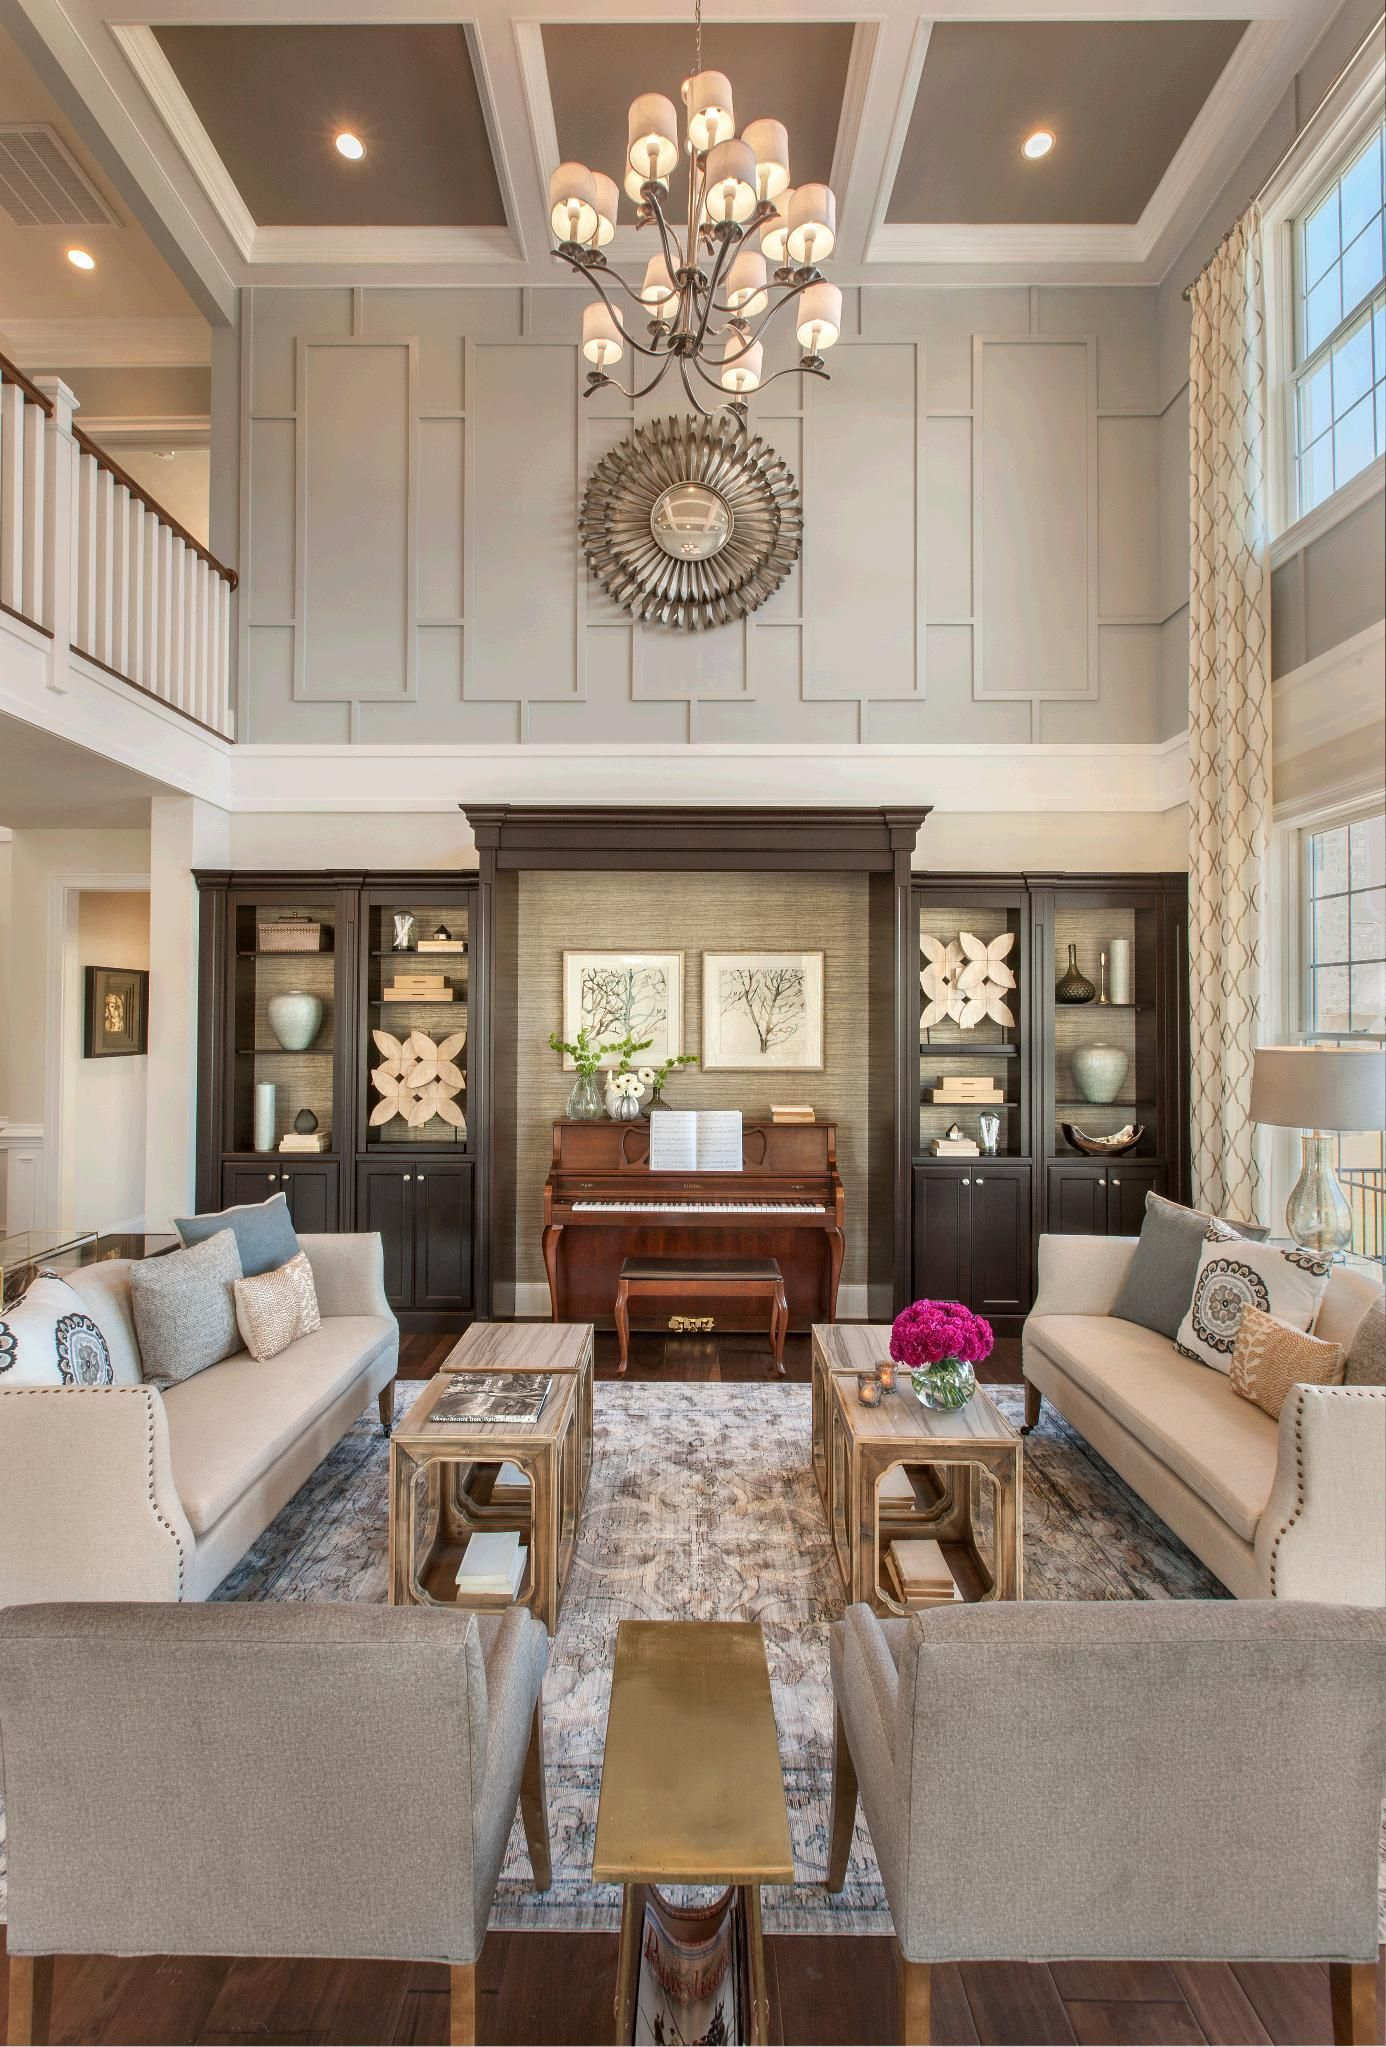 Top 5 Living Room Paint Ideas To Make Your Room Pop